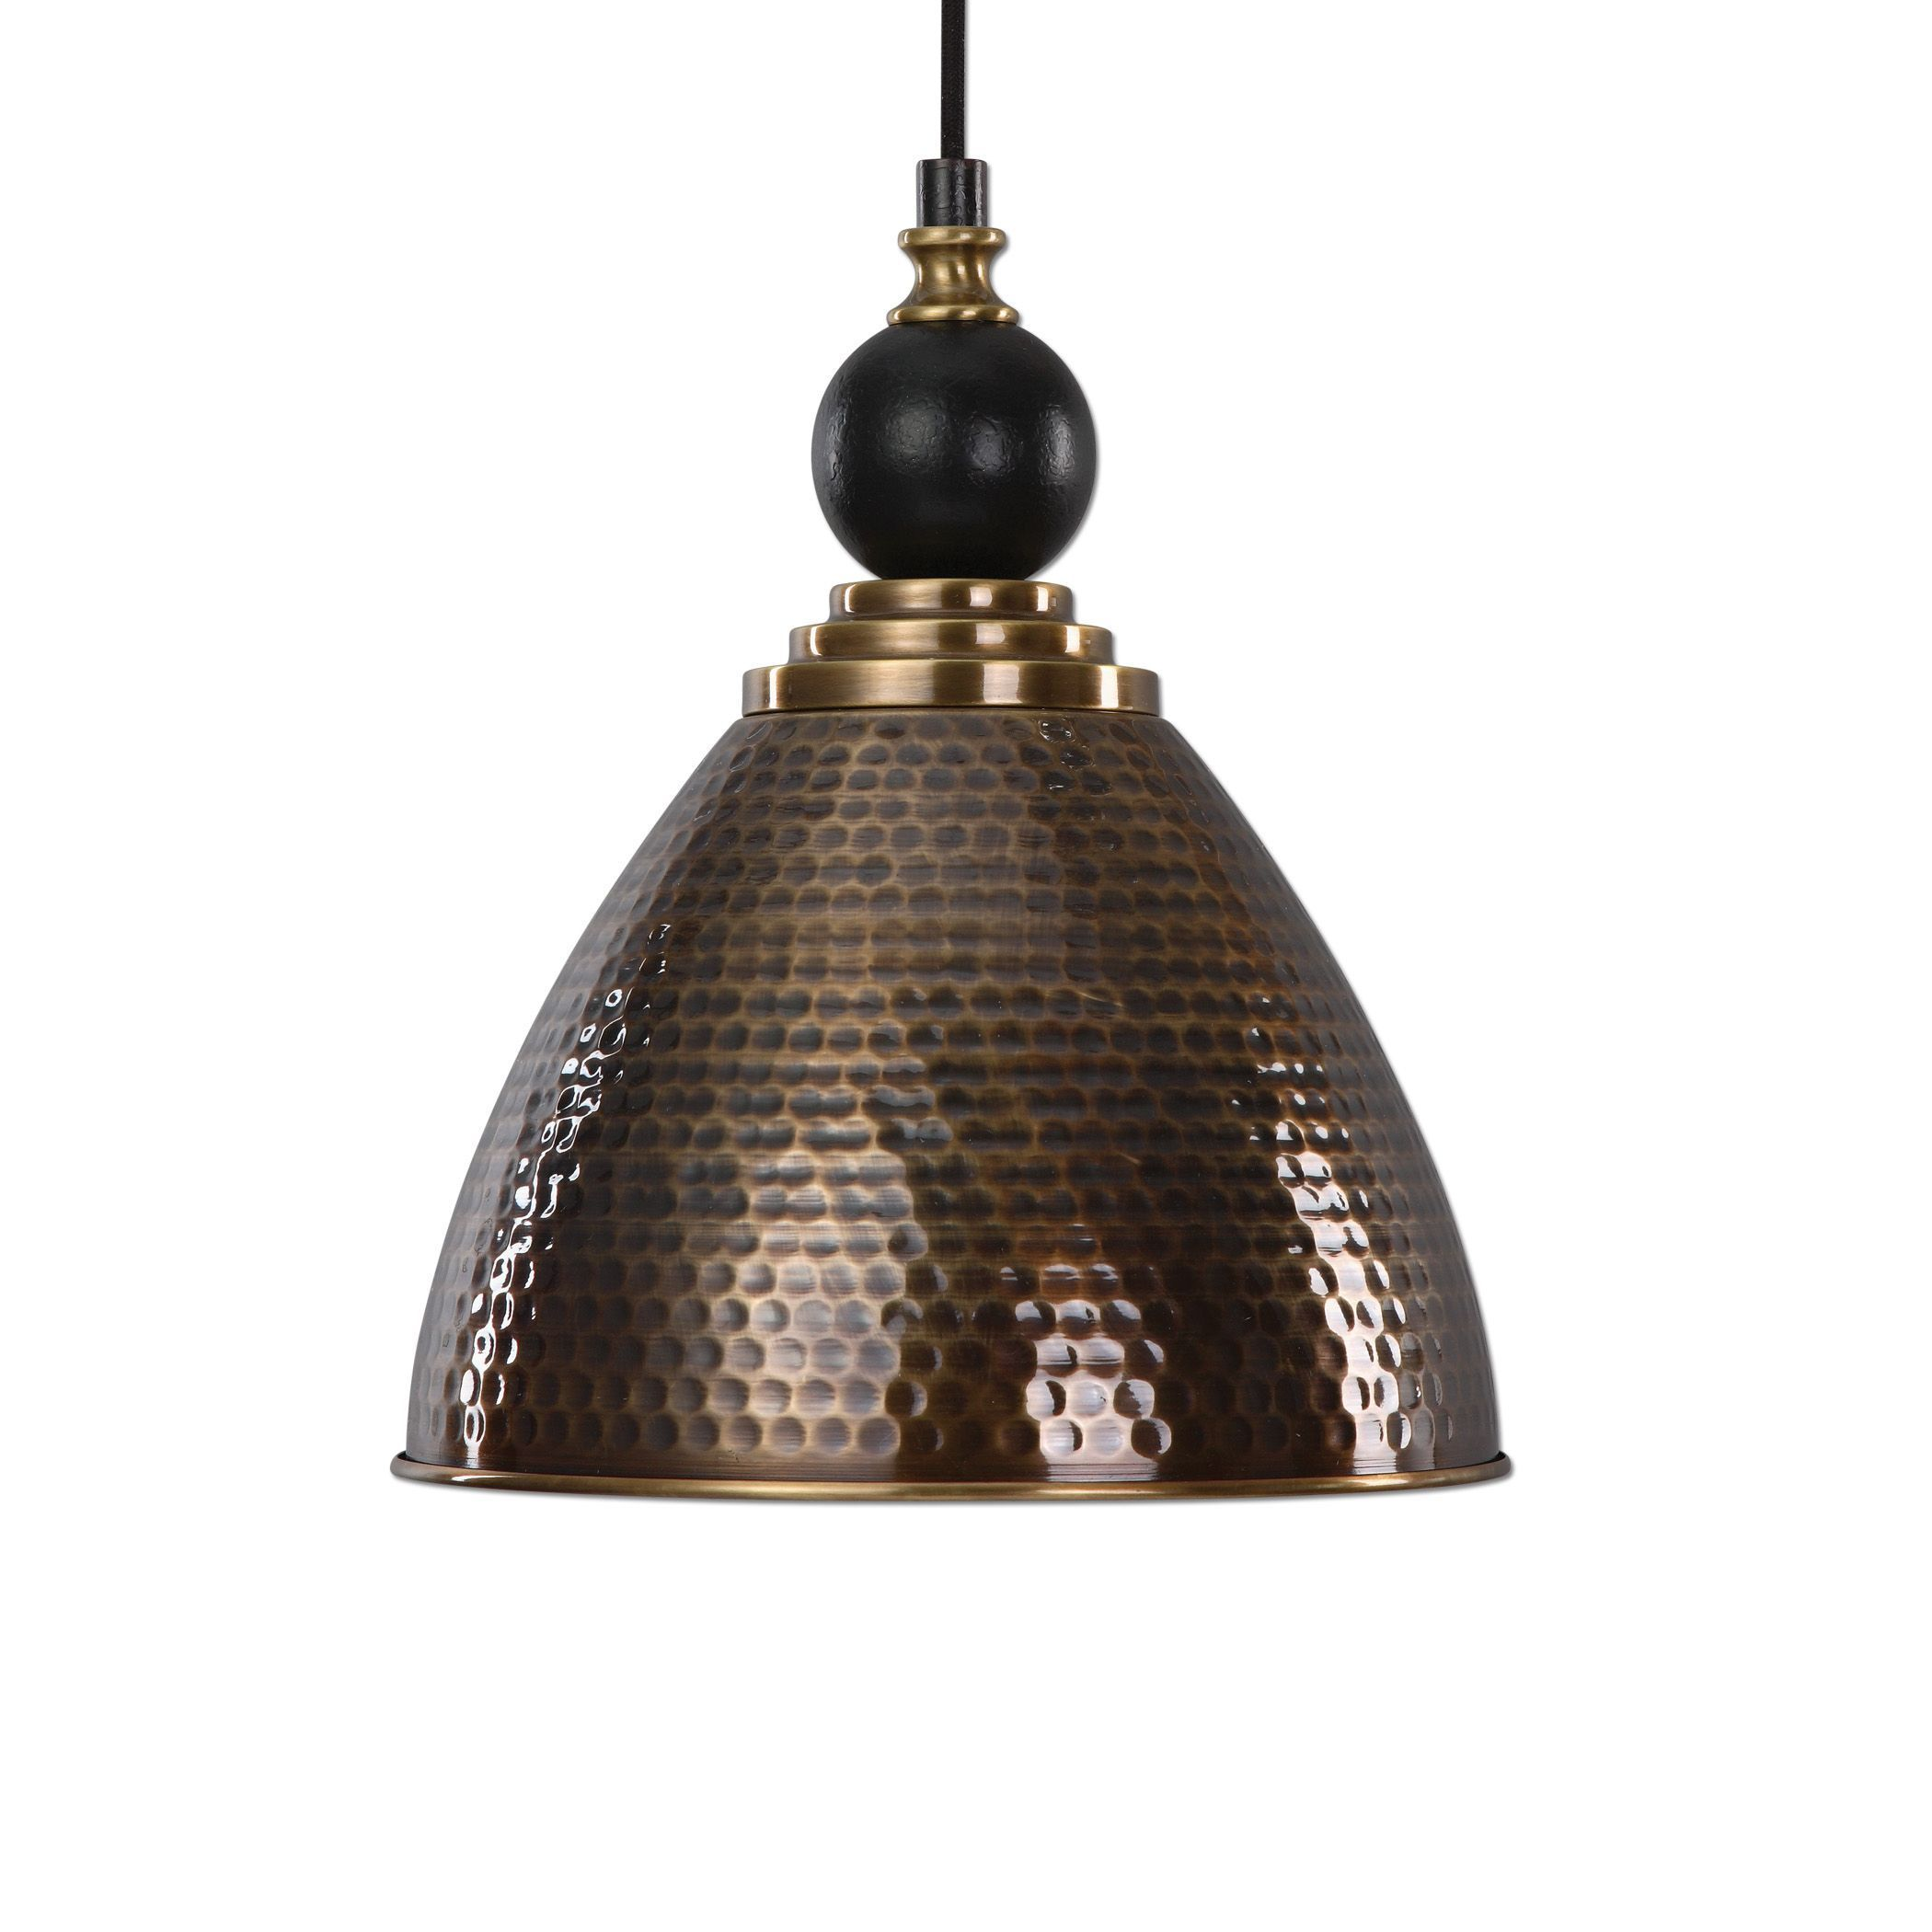 lamp pendant original catalog slate domani images com media en anglepoise deep brass dopo